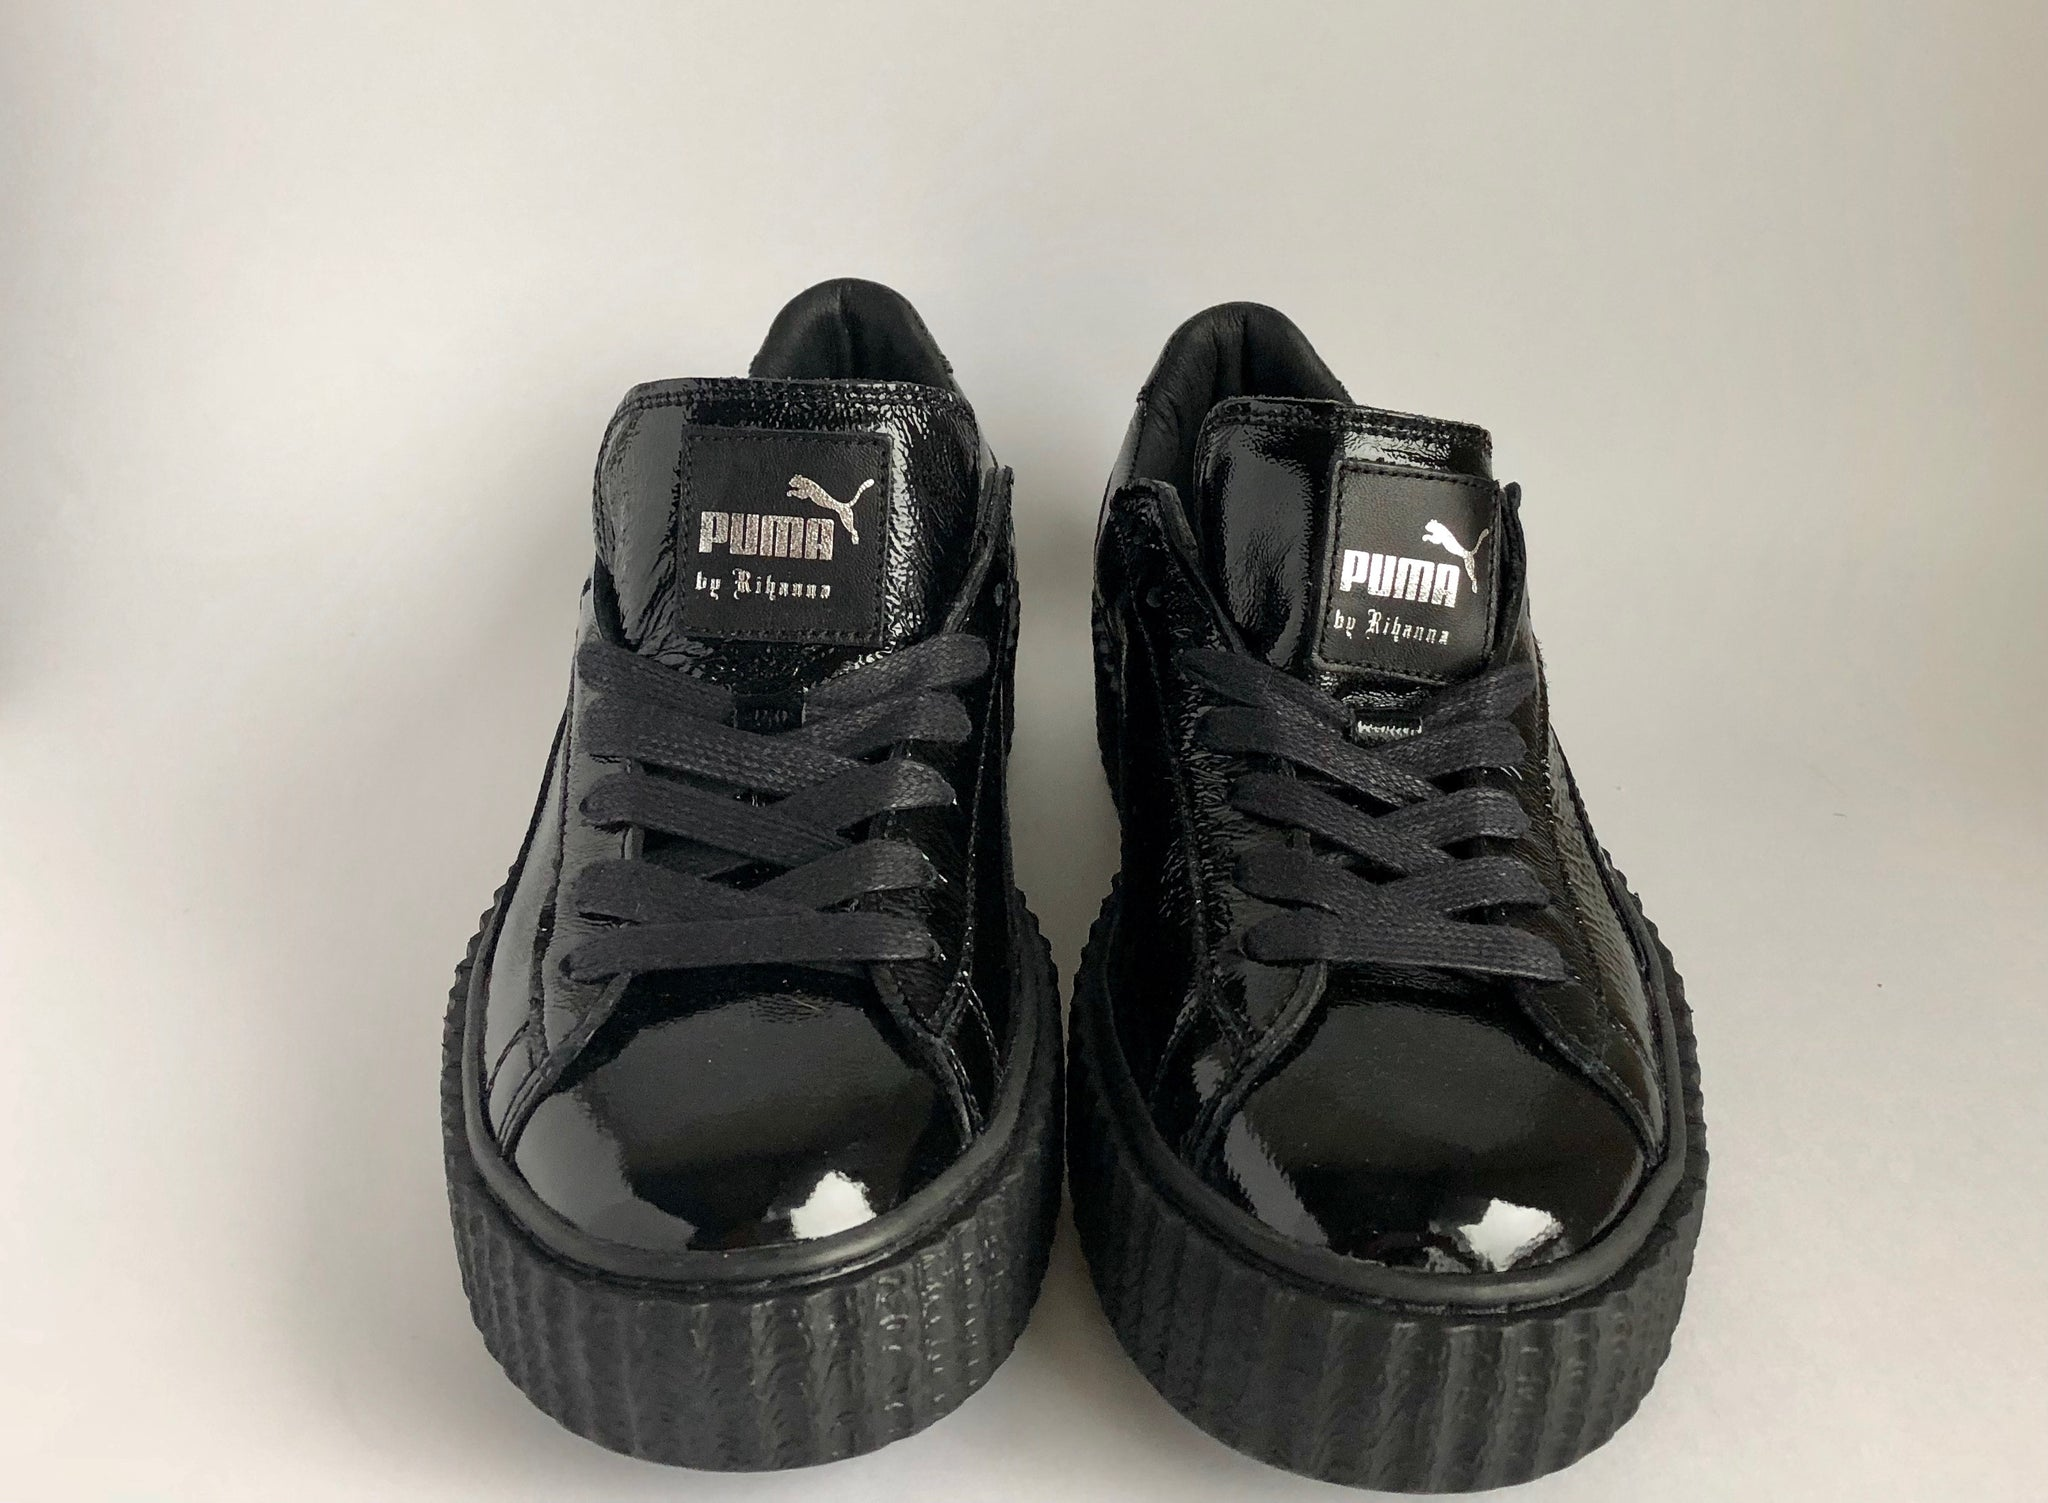 Fenty x Puma Cracked Leather Creepers